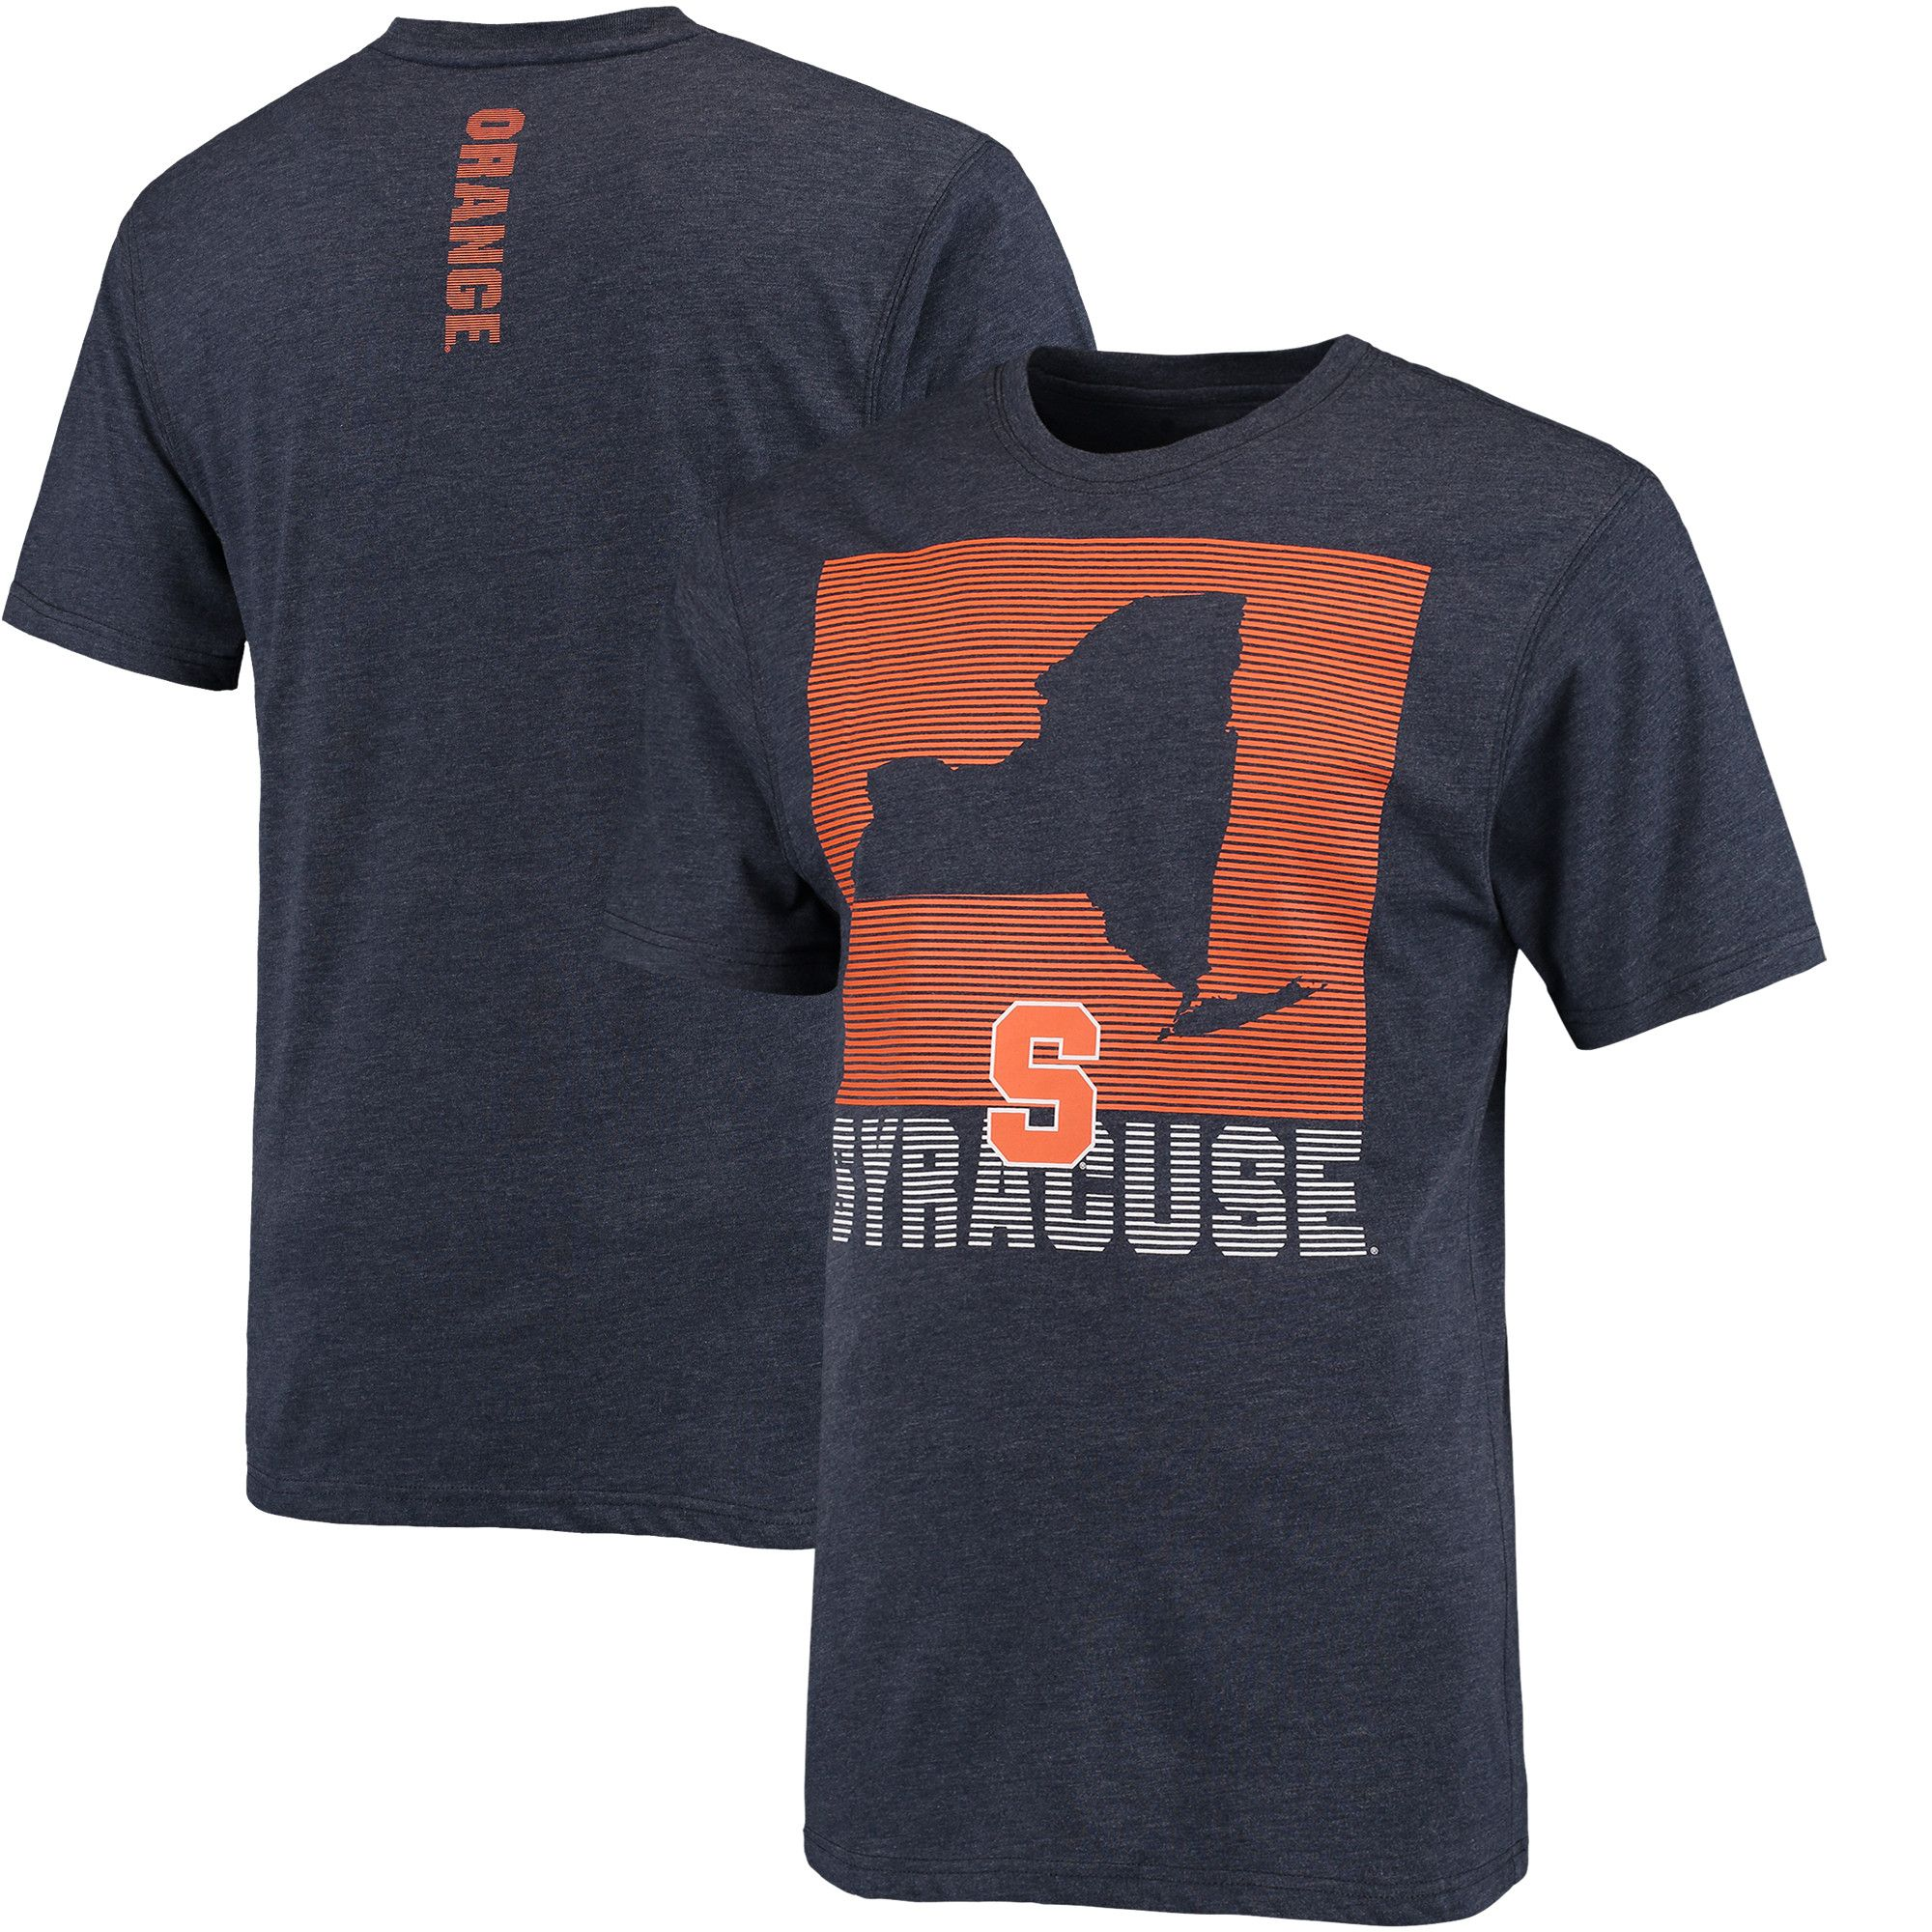 College Syracuse Orange Colosseum State of the Union T Shirt Navy